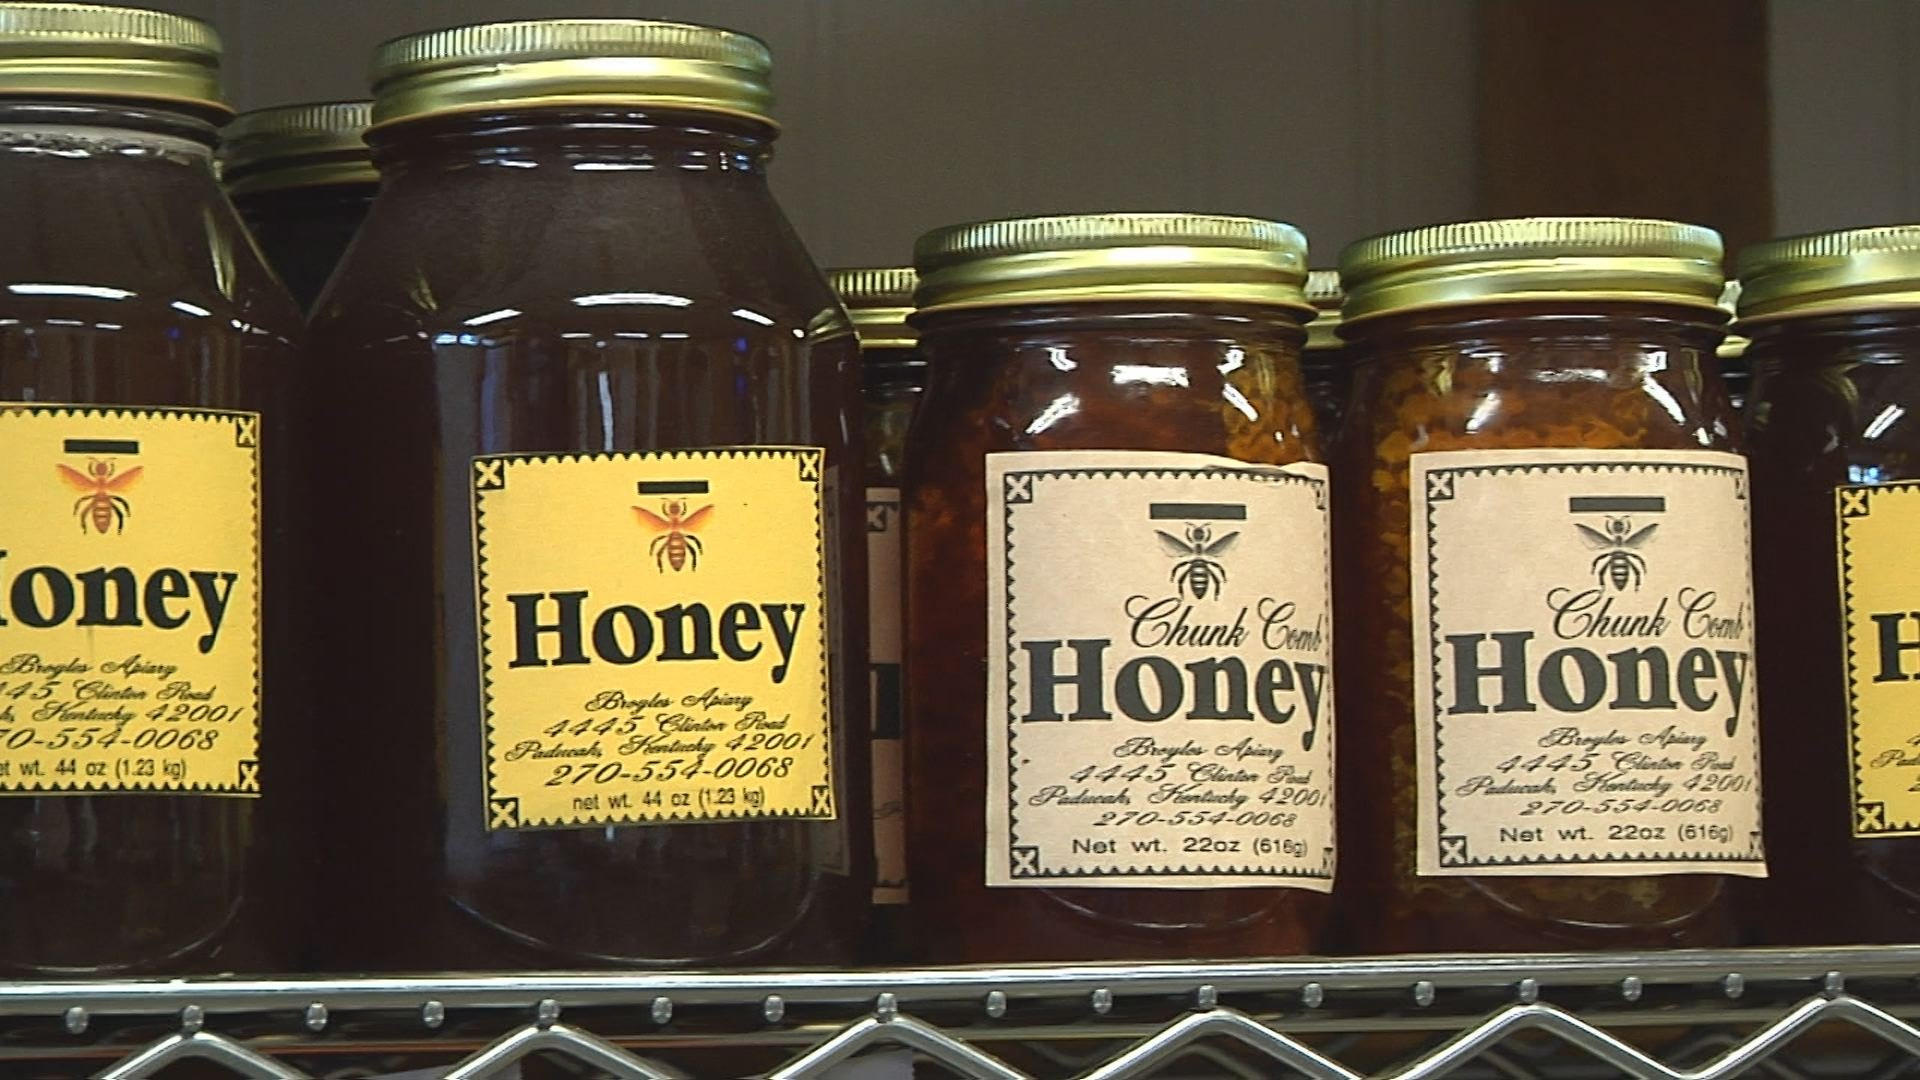 Pure honey from bees